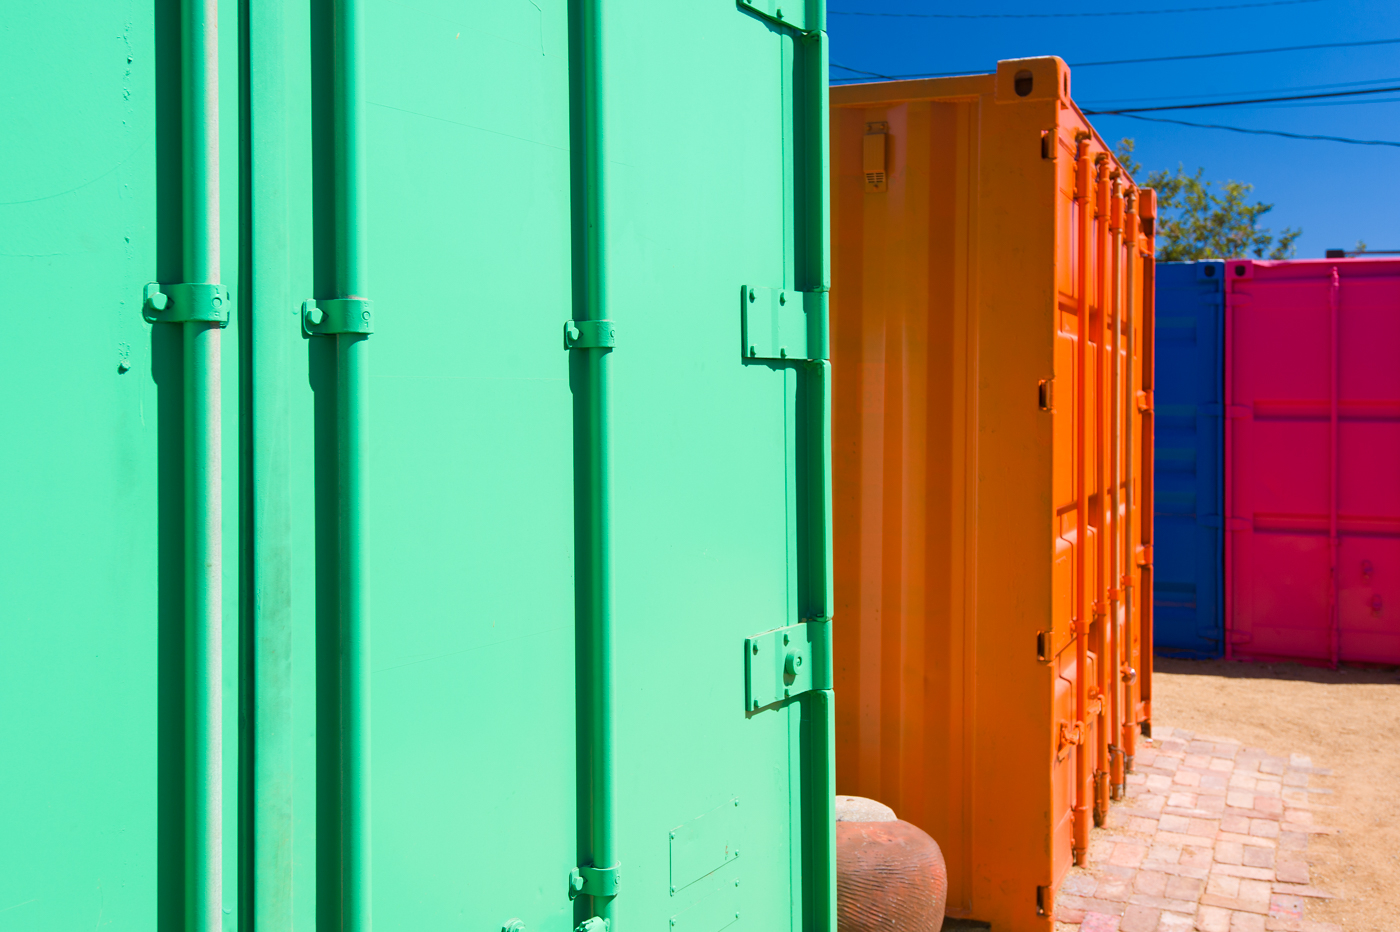 JeanClaudeVorgeack_OfficeContainers_07.jpg